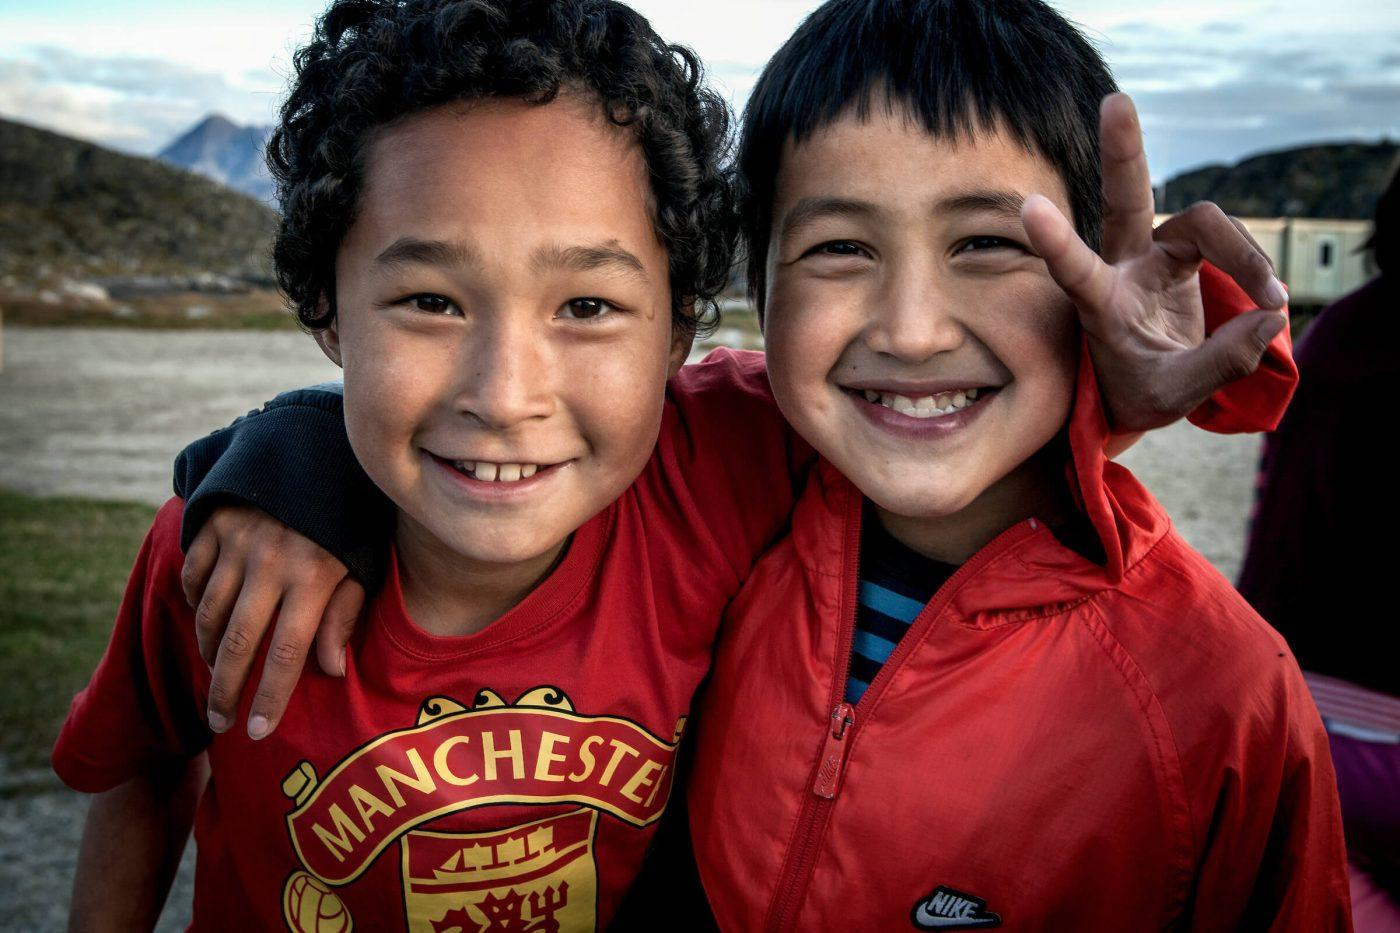 Two football loving kids from Itilleq in Greenland, by Mads Pihl